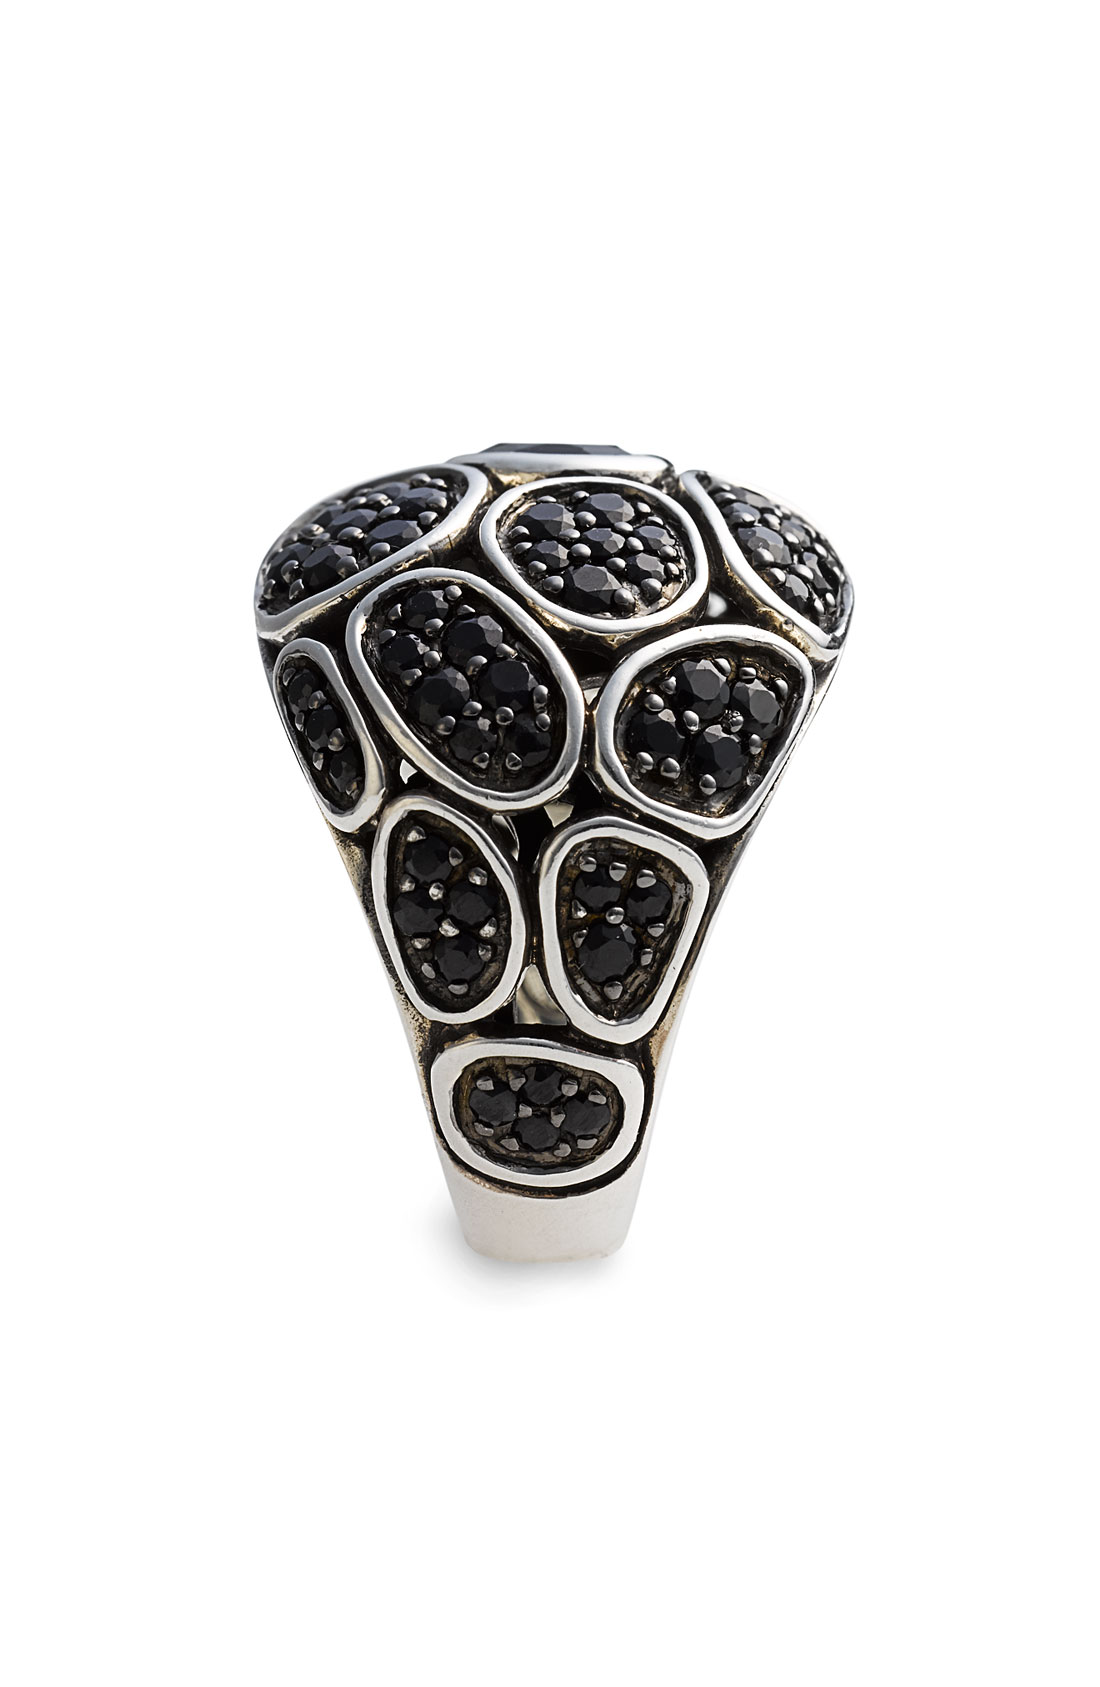 John hardy kali silver dome ring in silver black for John hardy jewelry factory bali